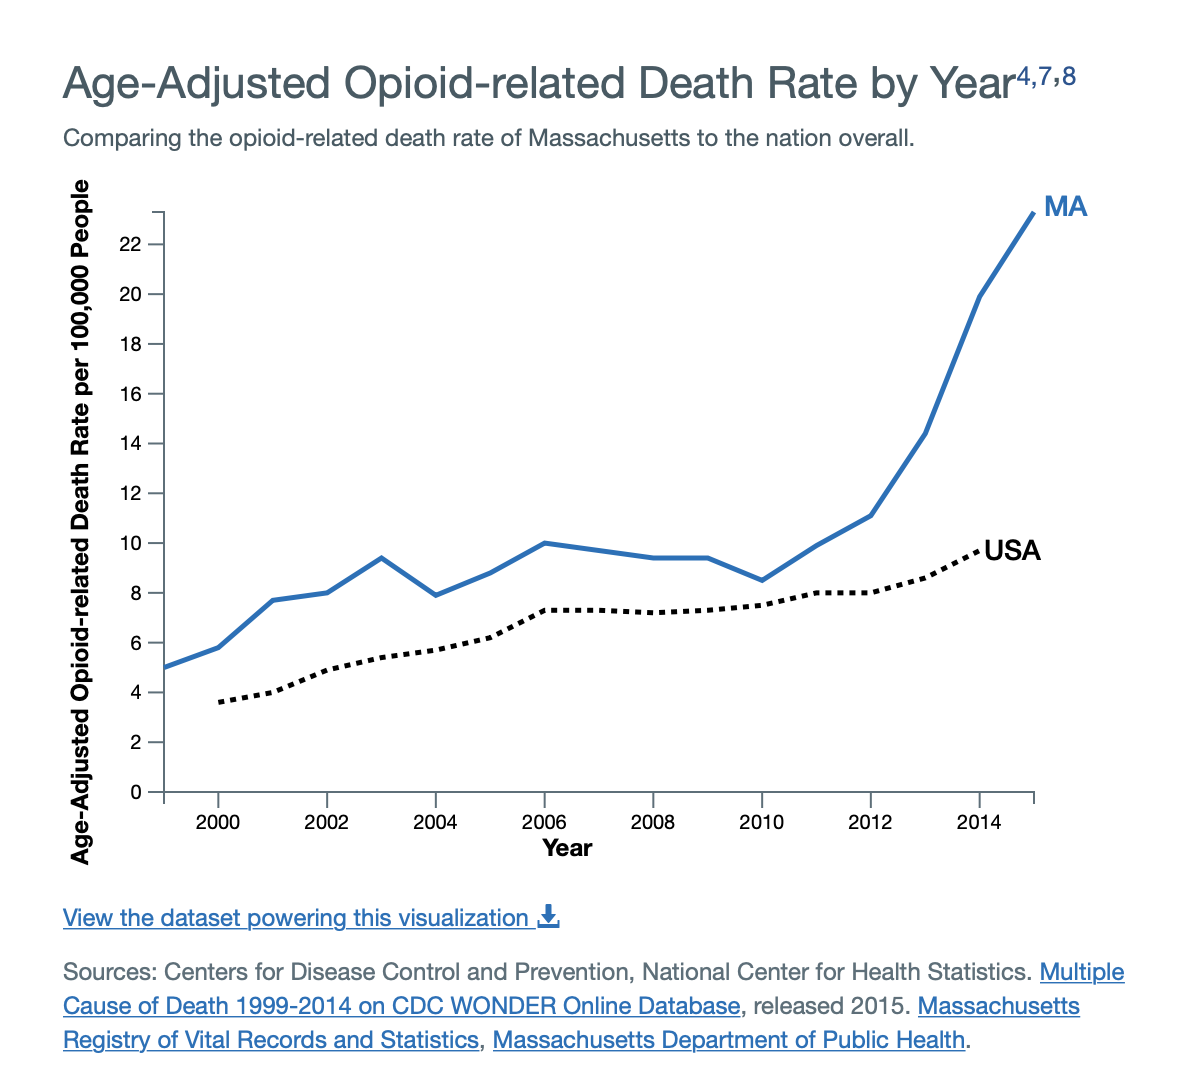 Age-Adjusted Opioid-related Death Rate by Year